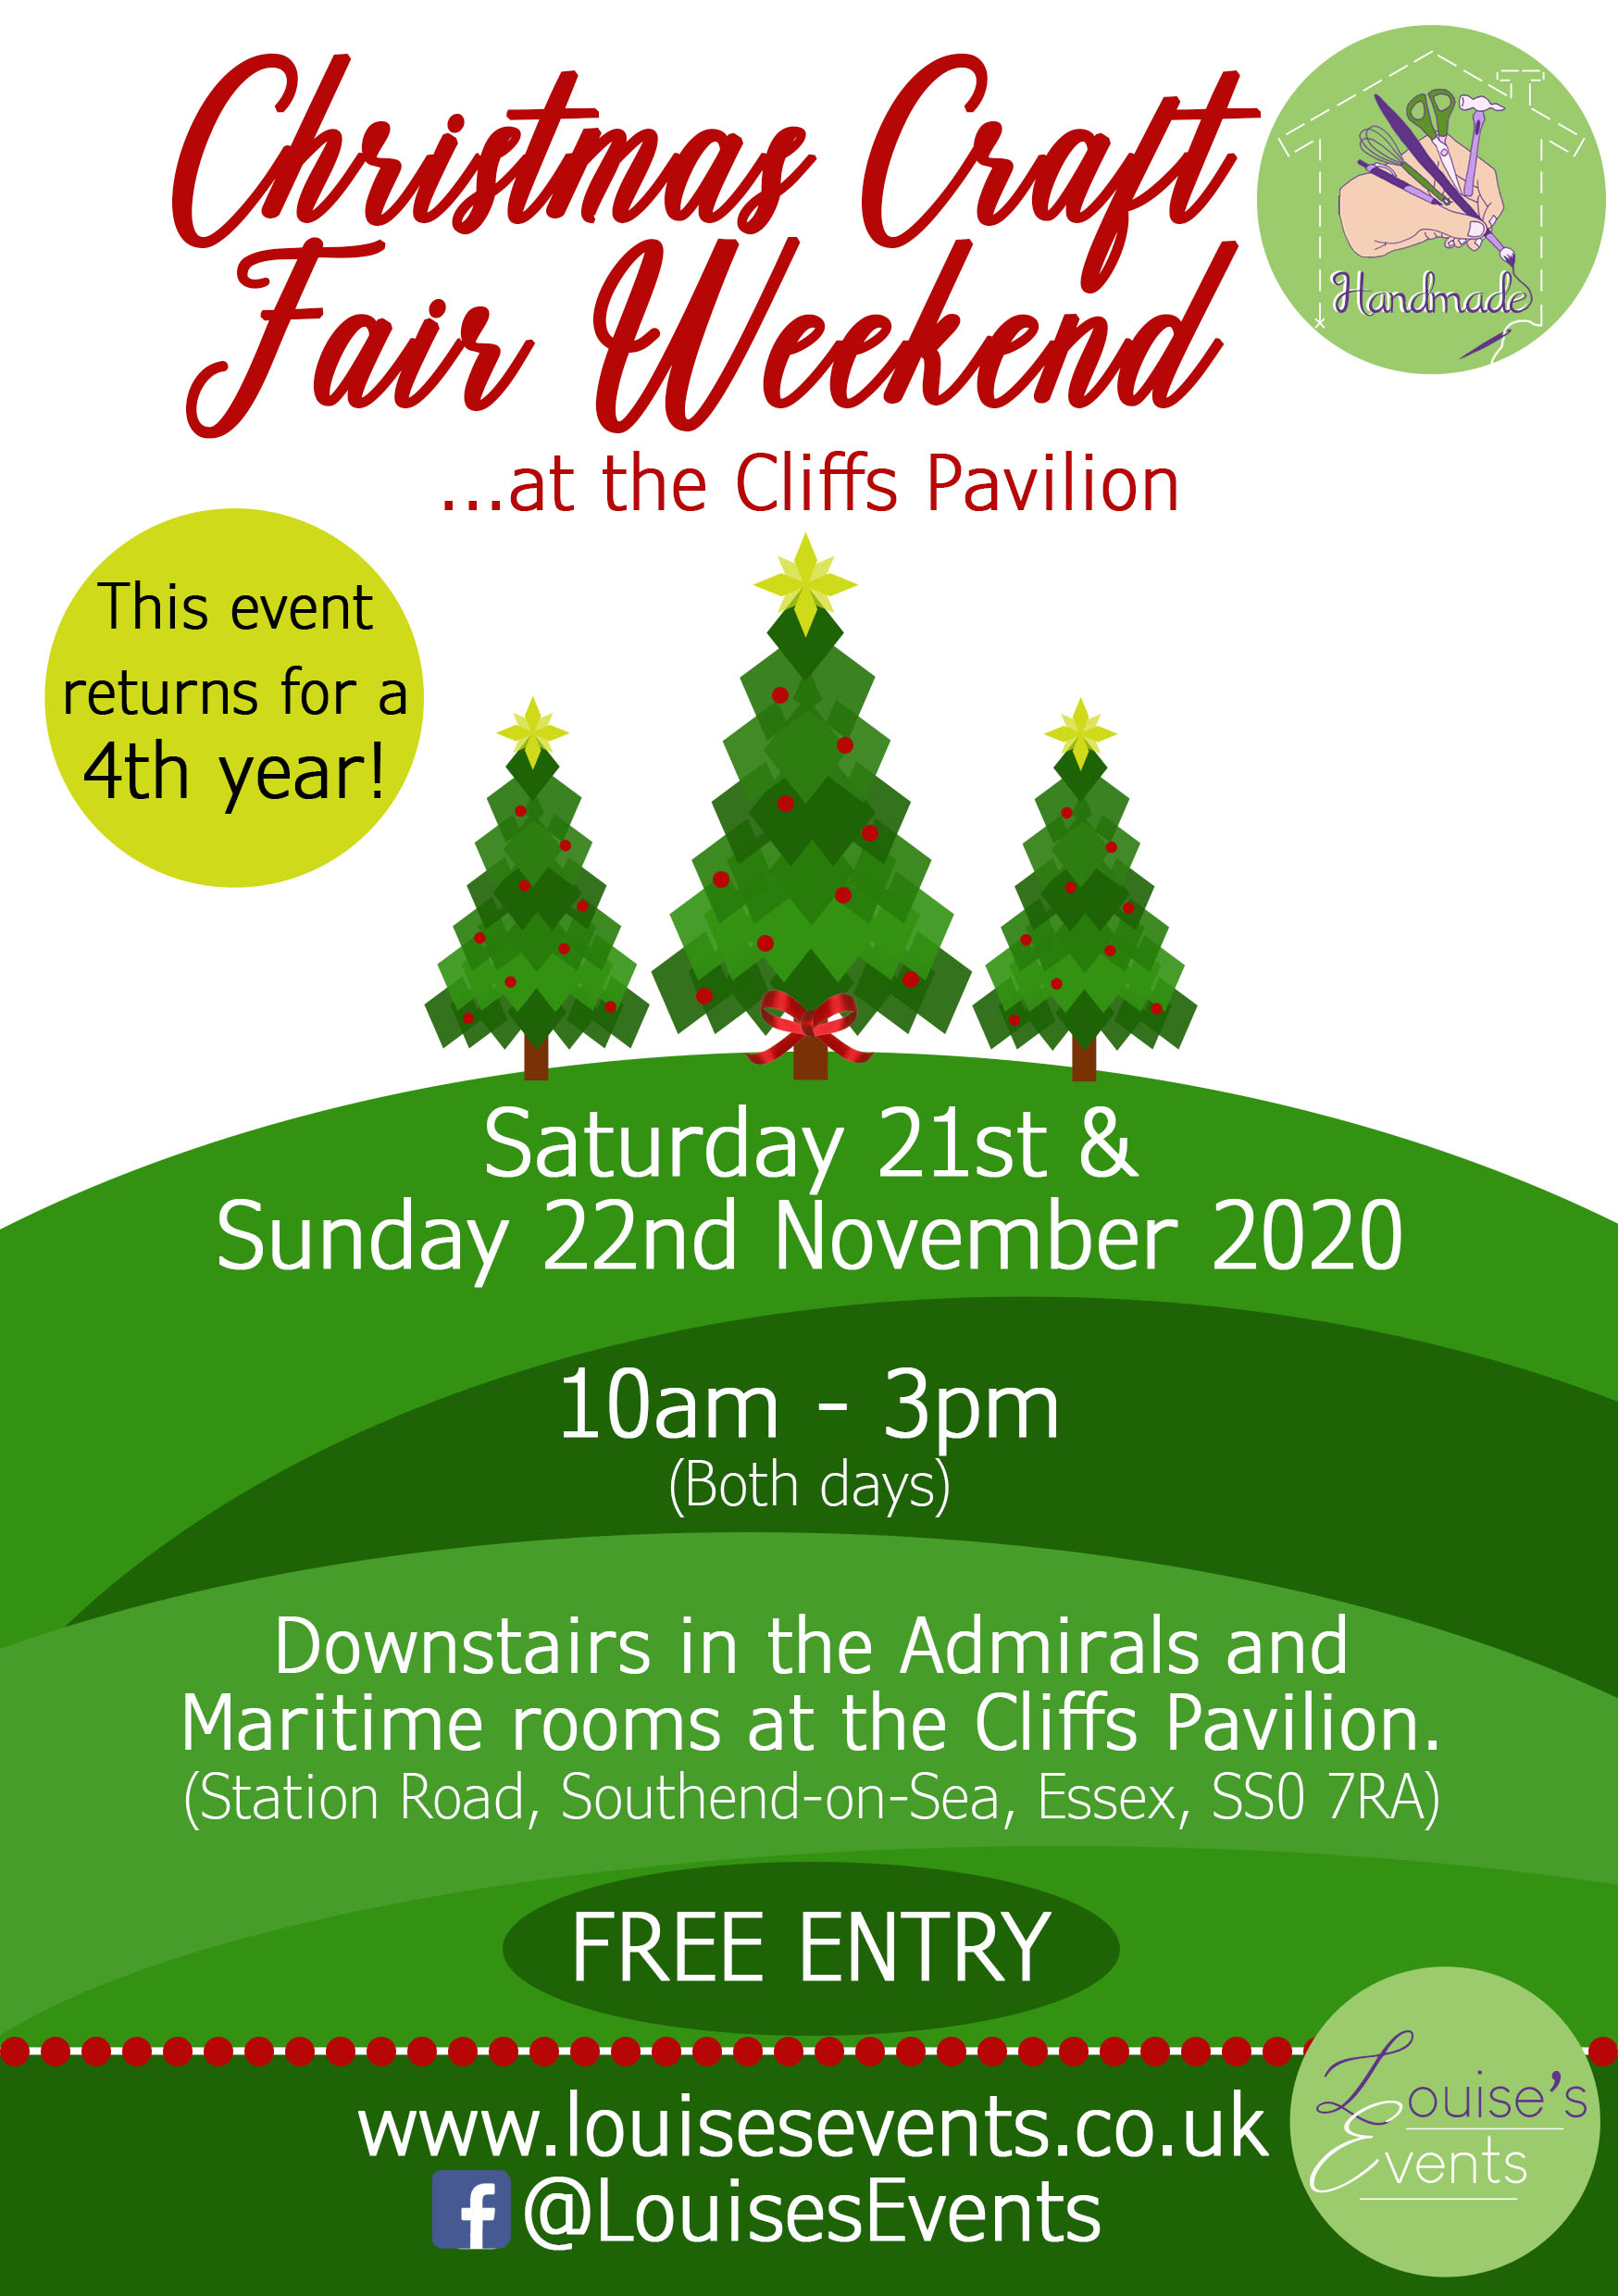 Christmas Craft Fair Weekend by Louise's Events